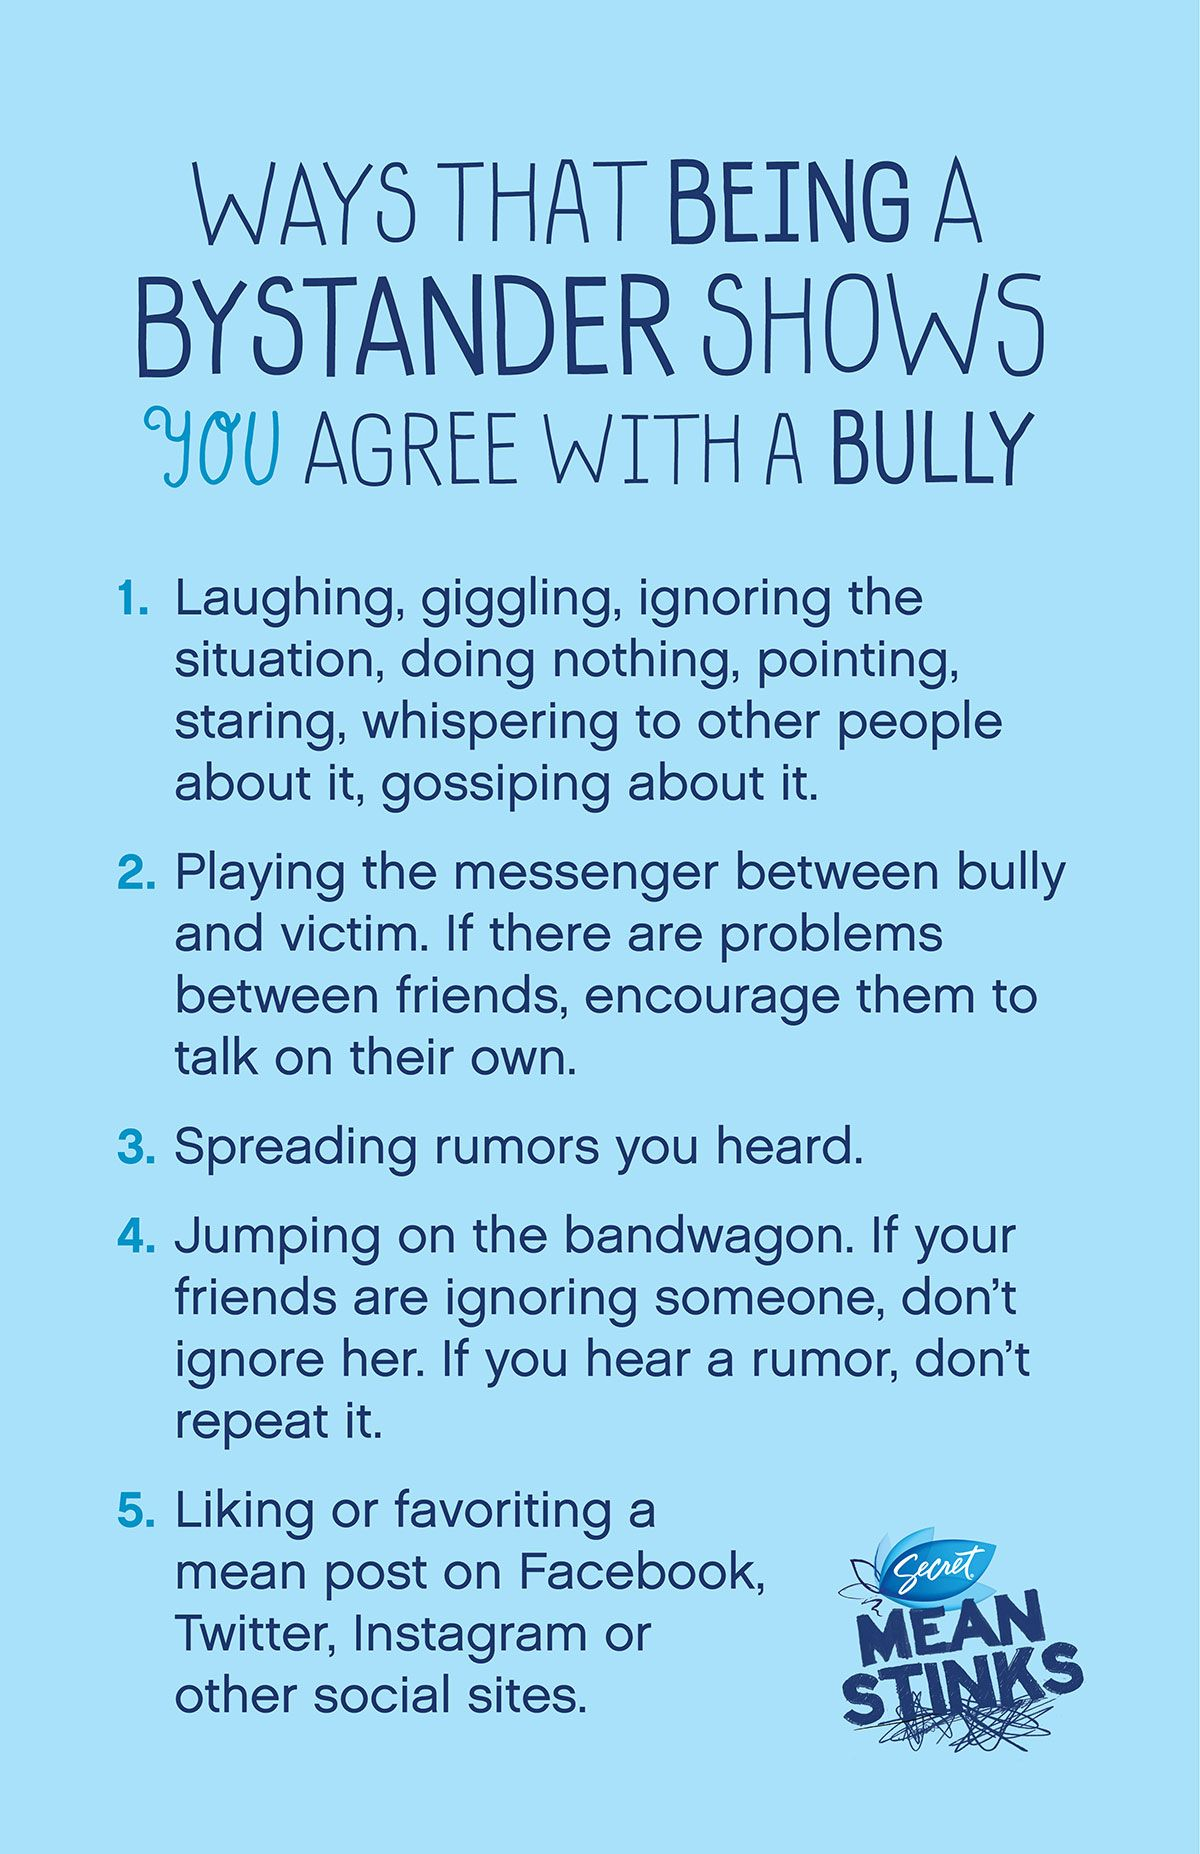 Ways that being a bystander shows you agree with a bully encourage ways that being a bystander shows you agree with a bully encourage kids to speak up for bullying targets not to be a bystander fandeluxe Images